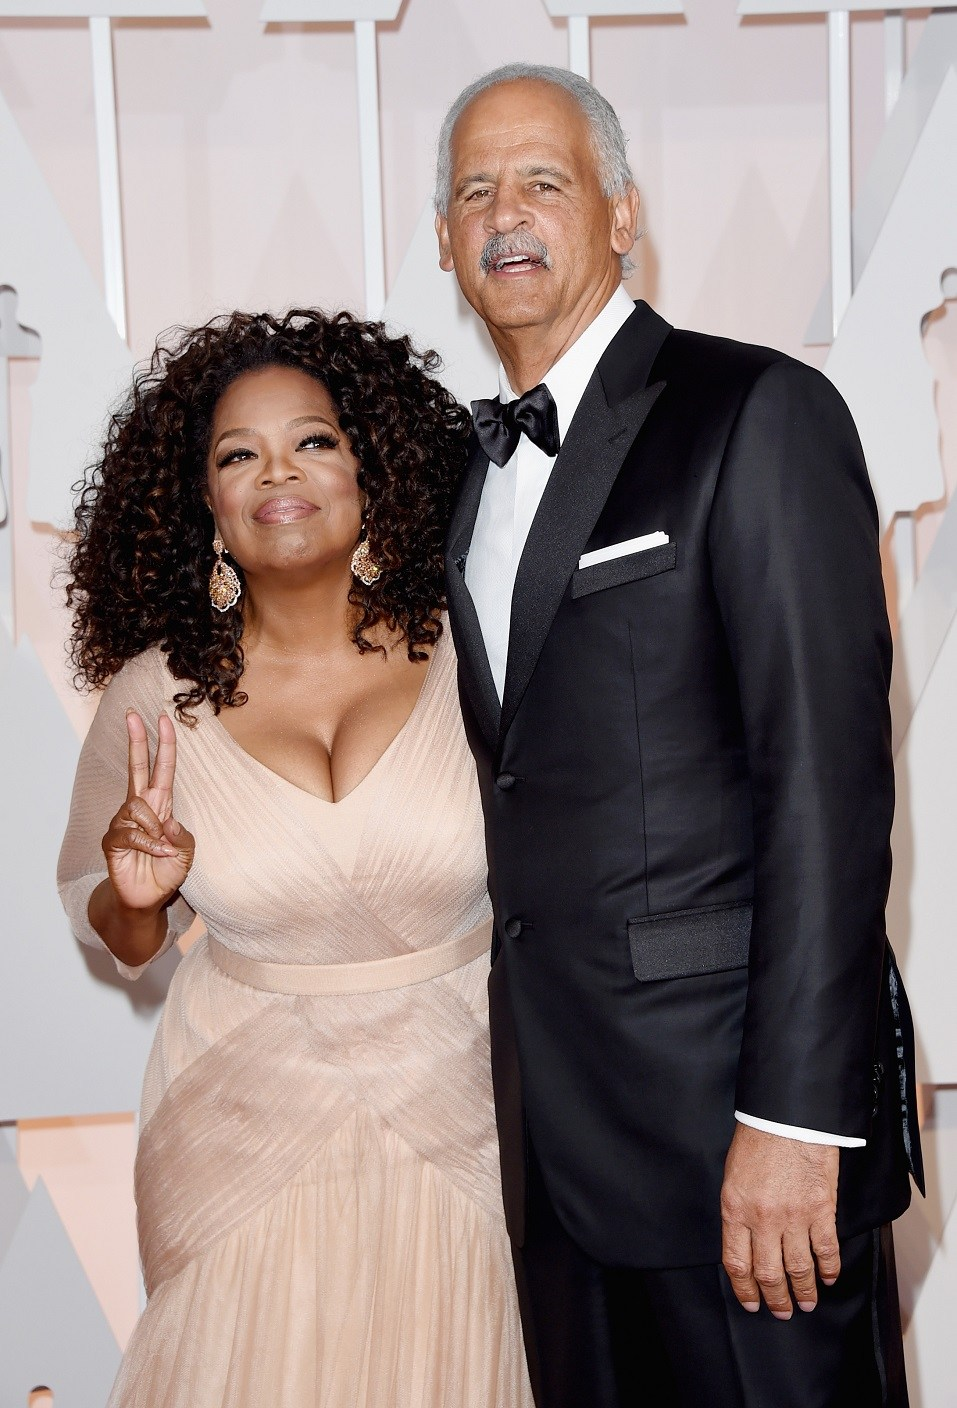 Oprah Winfrey (L) and Stedman Graham attend the 87th Annual Academy Awards